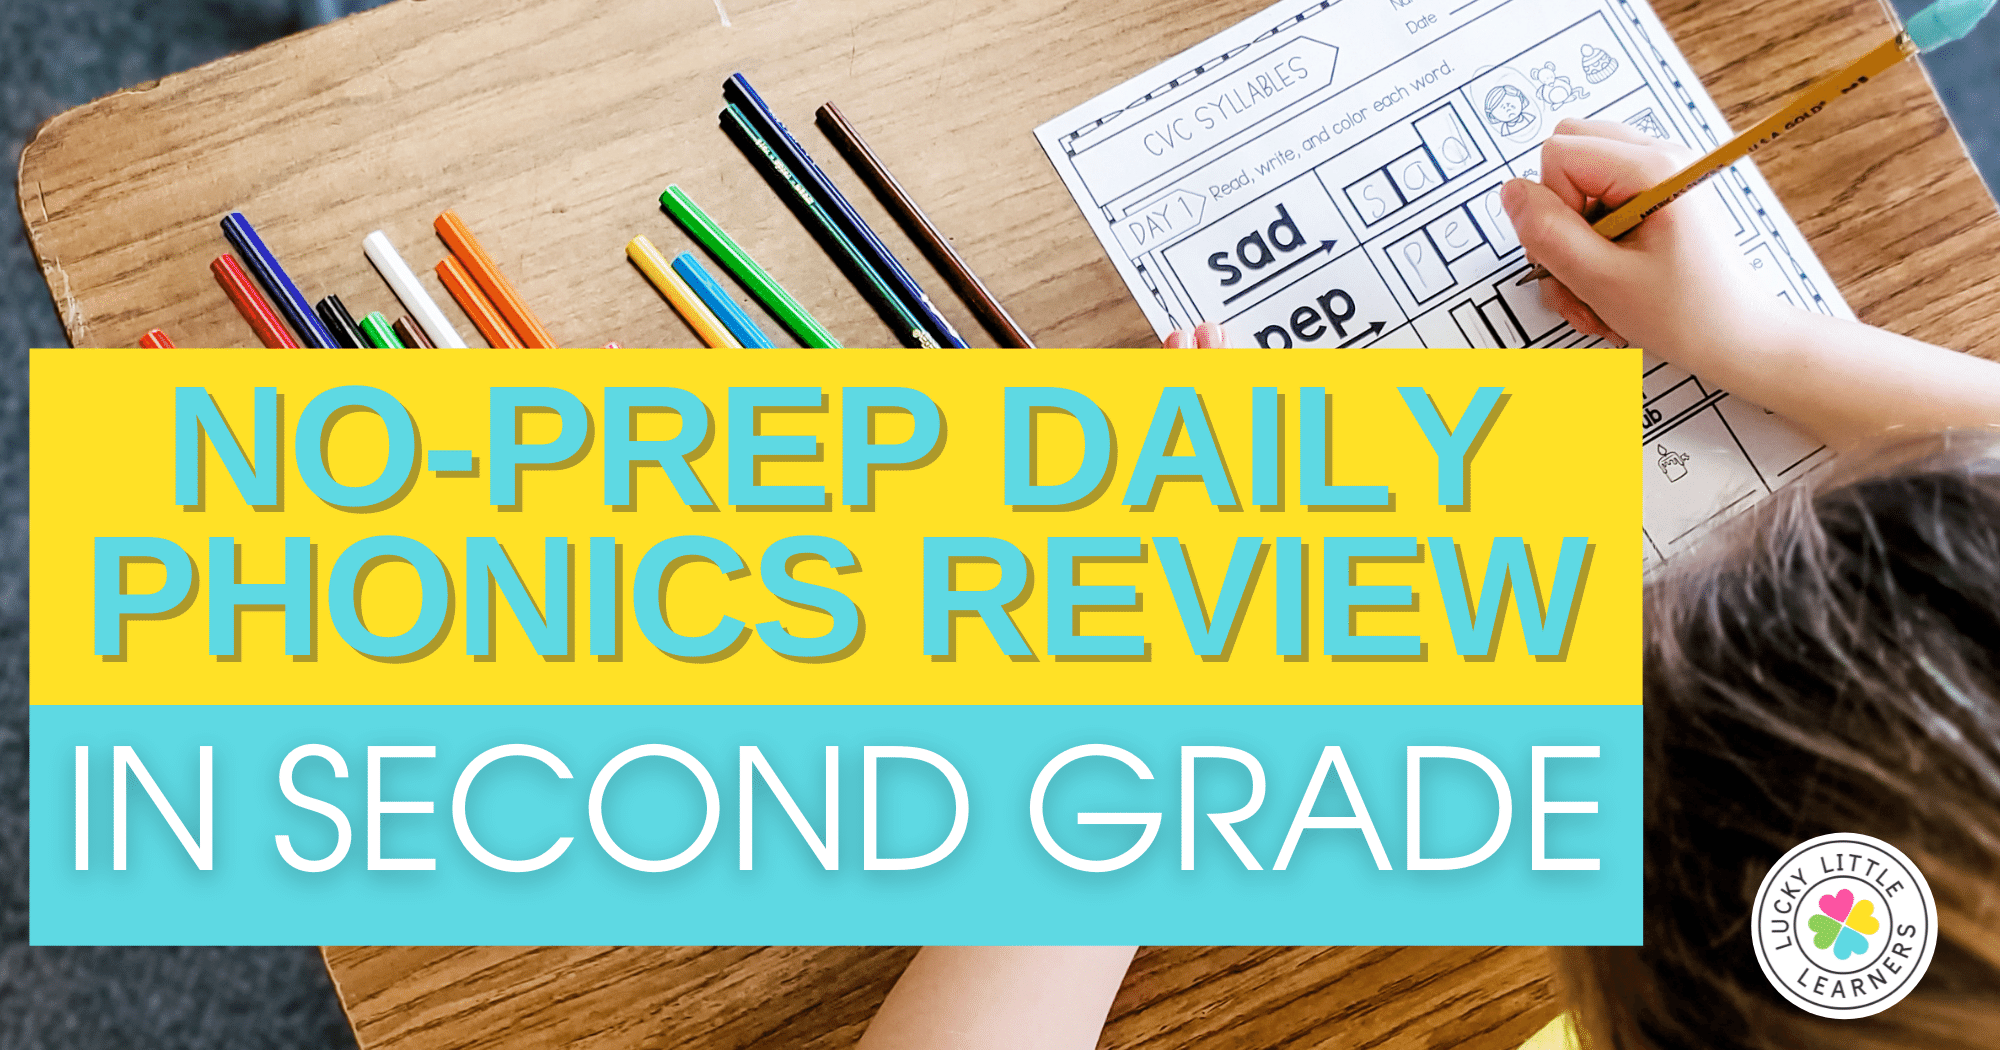 no prep daily phonics review in second grade